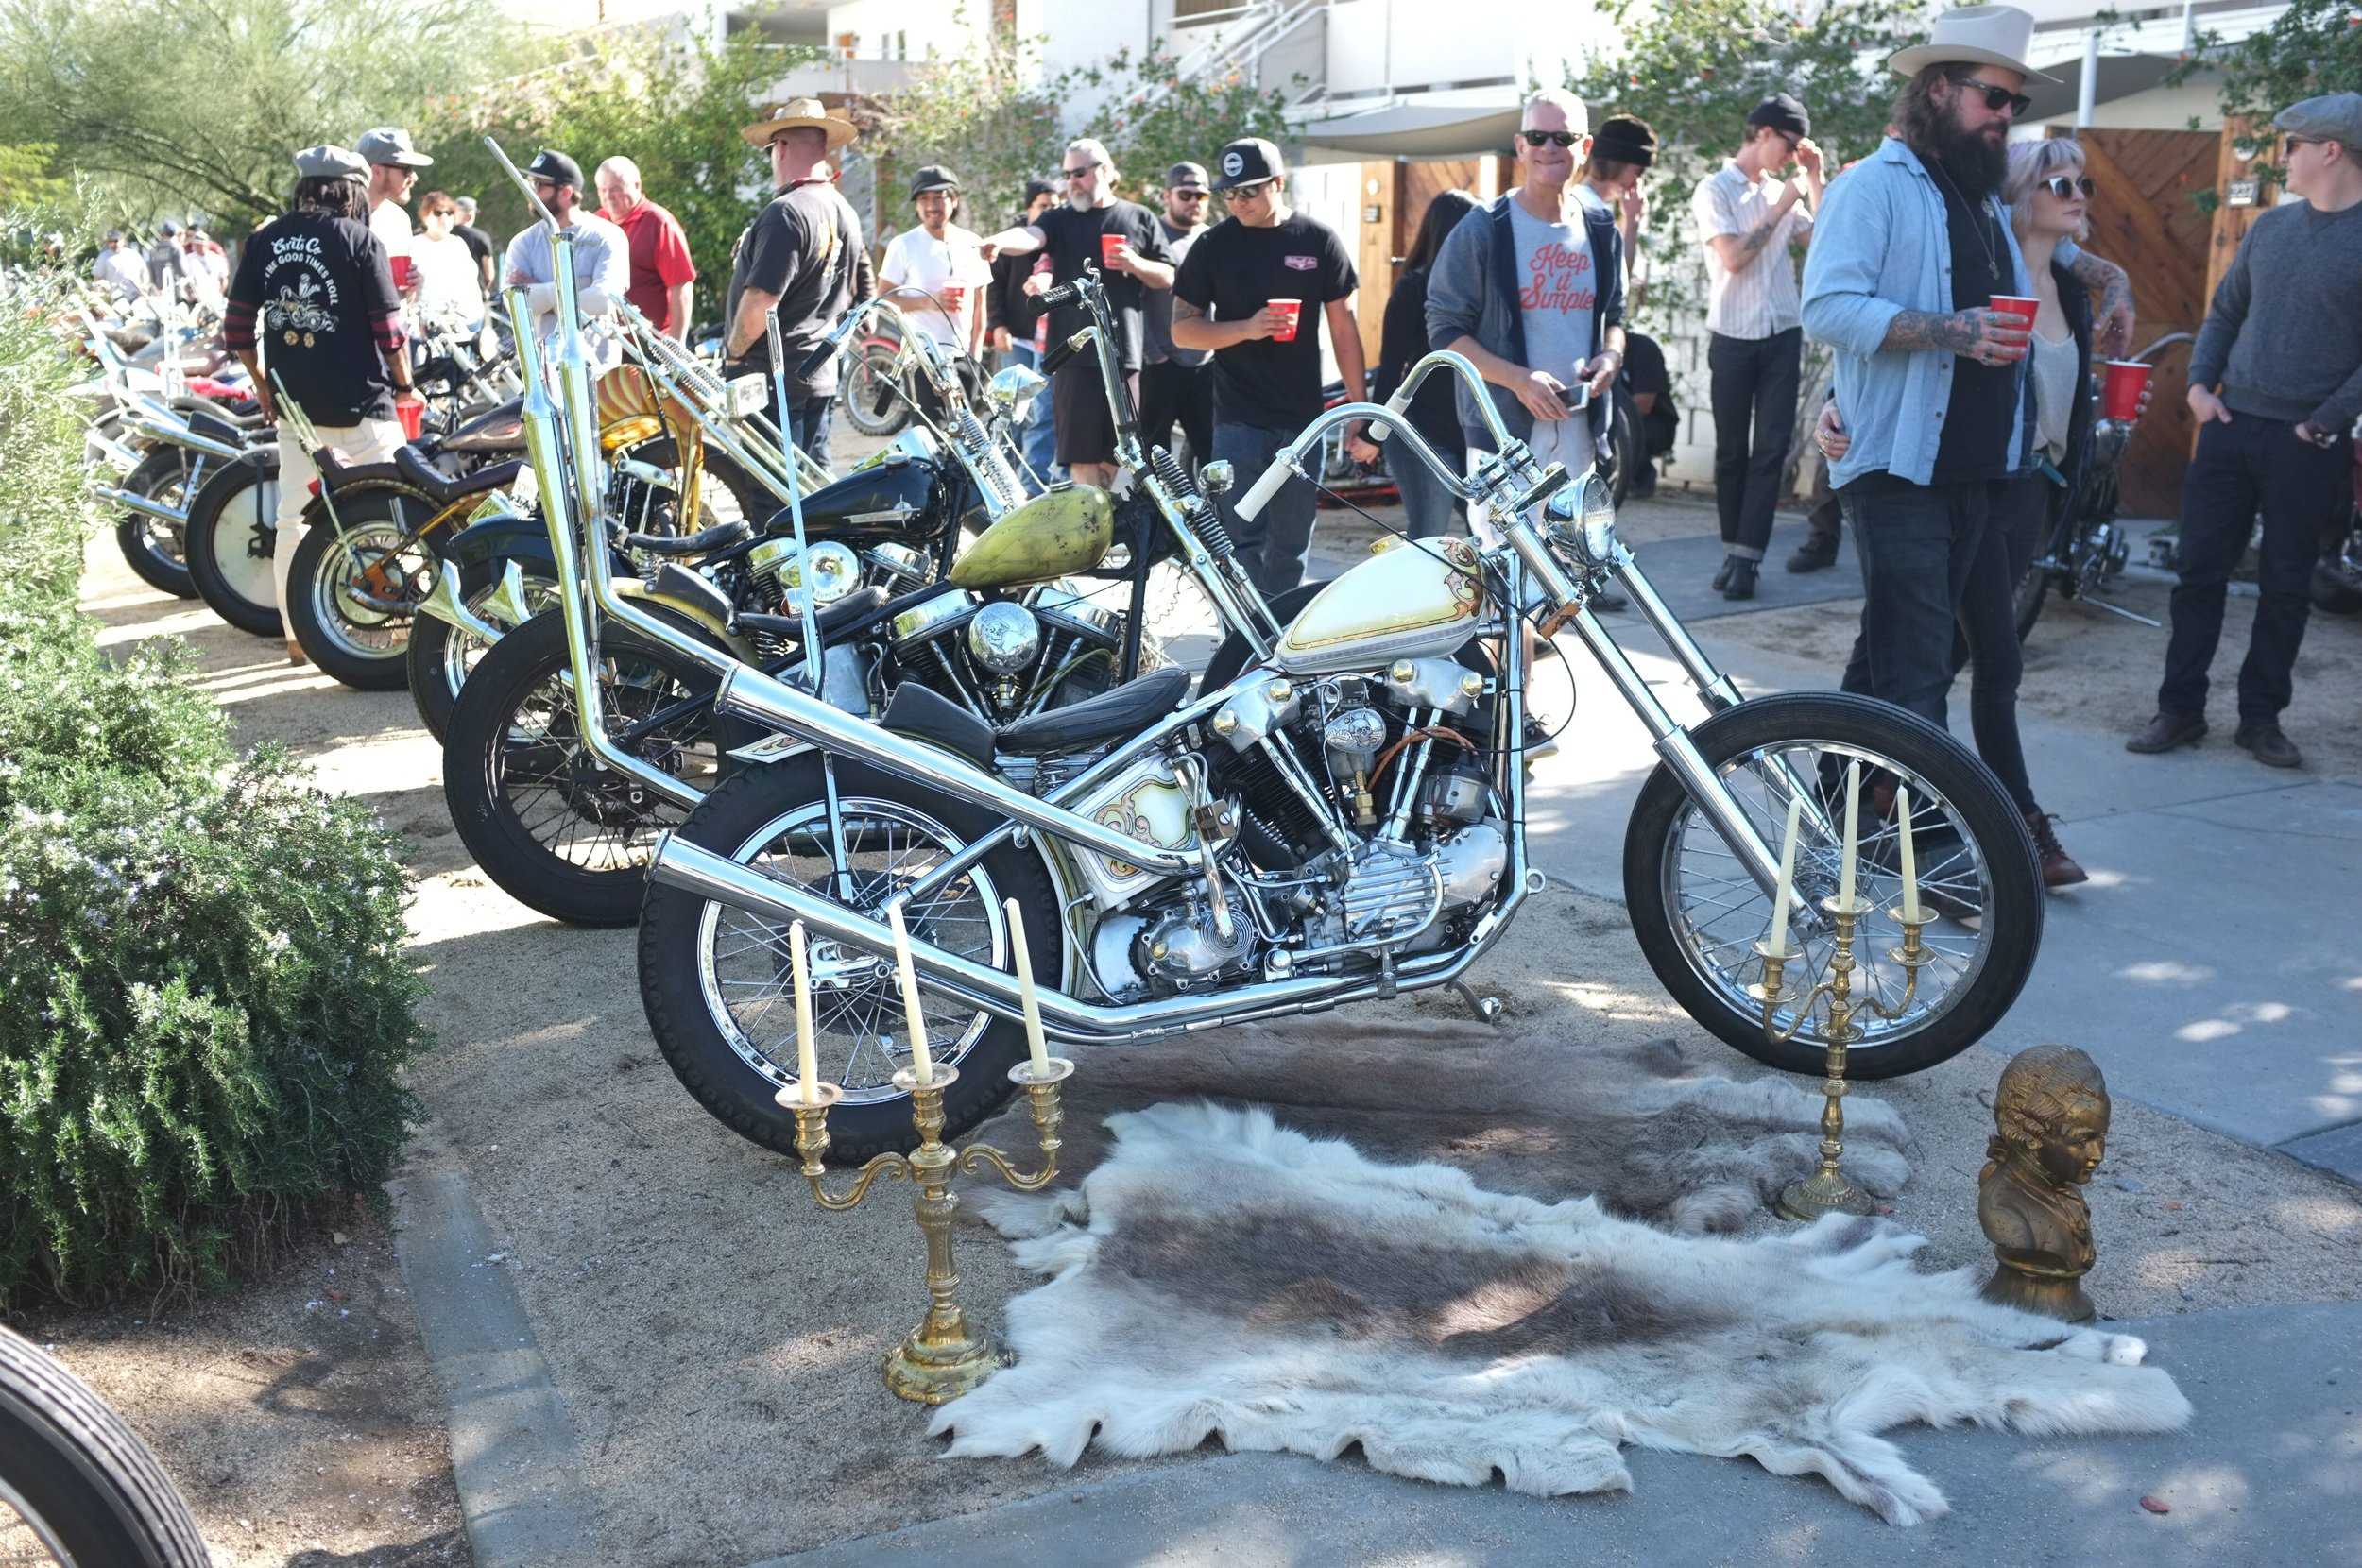 Chatty's Knucklehead at Paradise Road Show